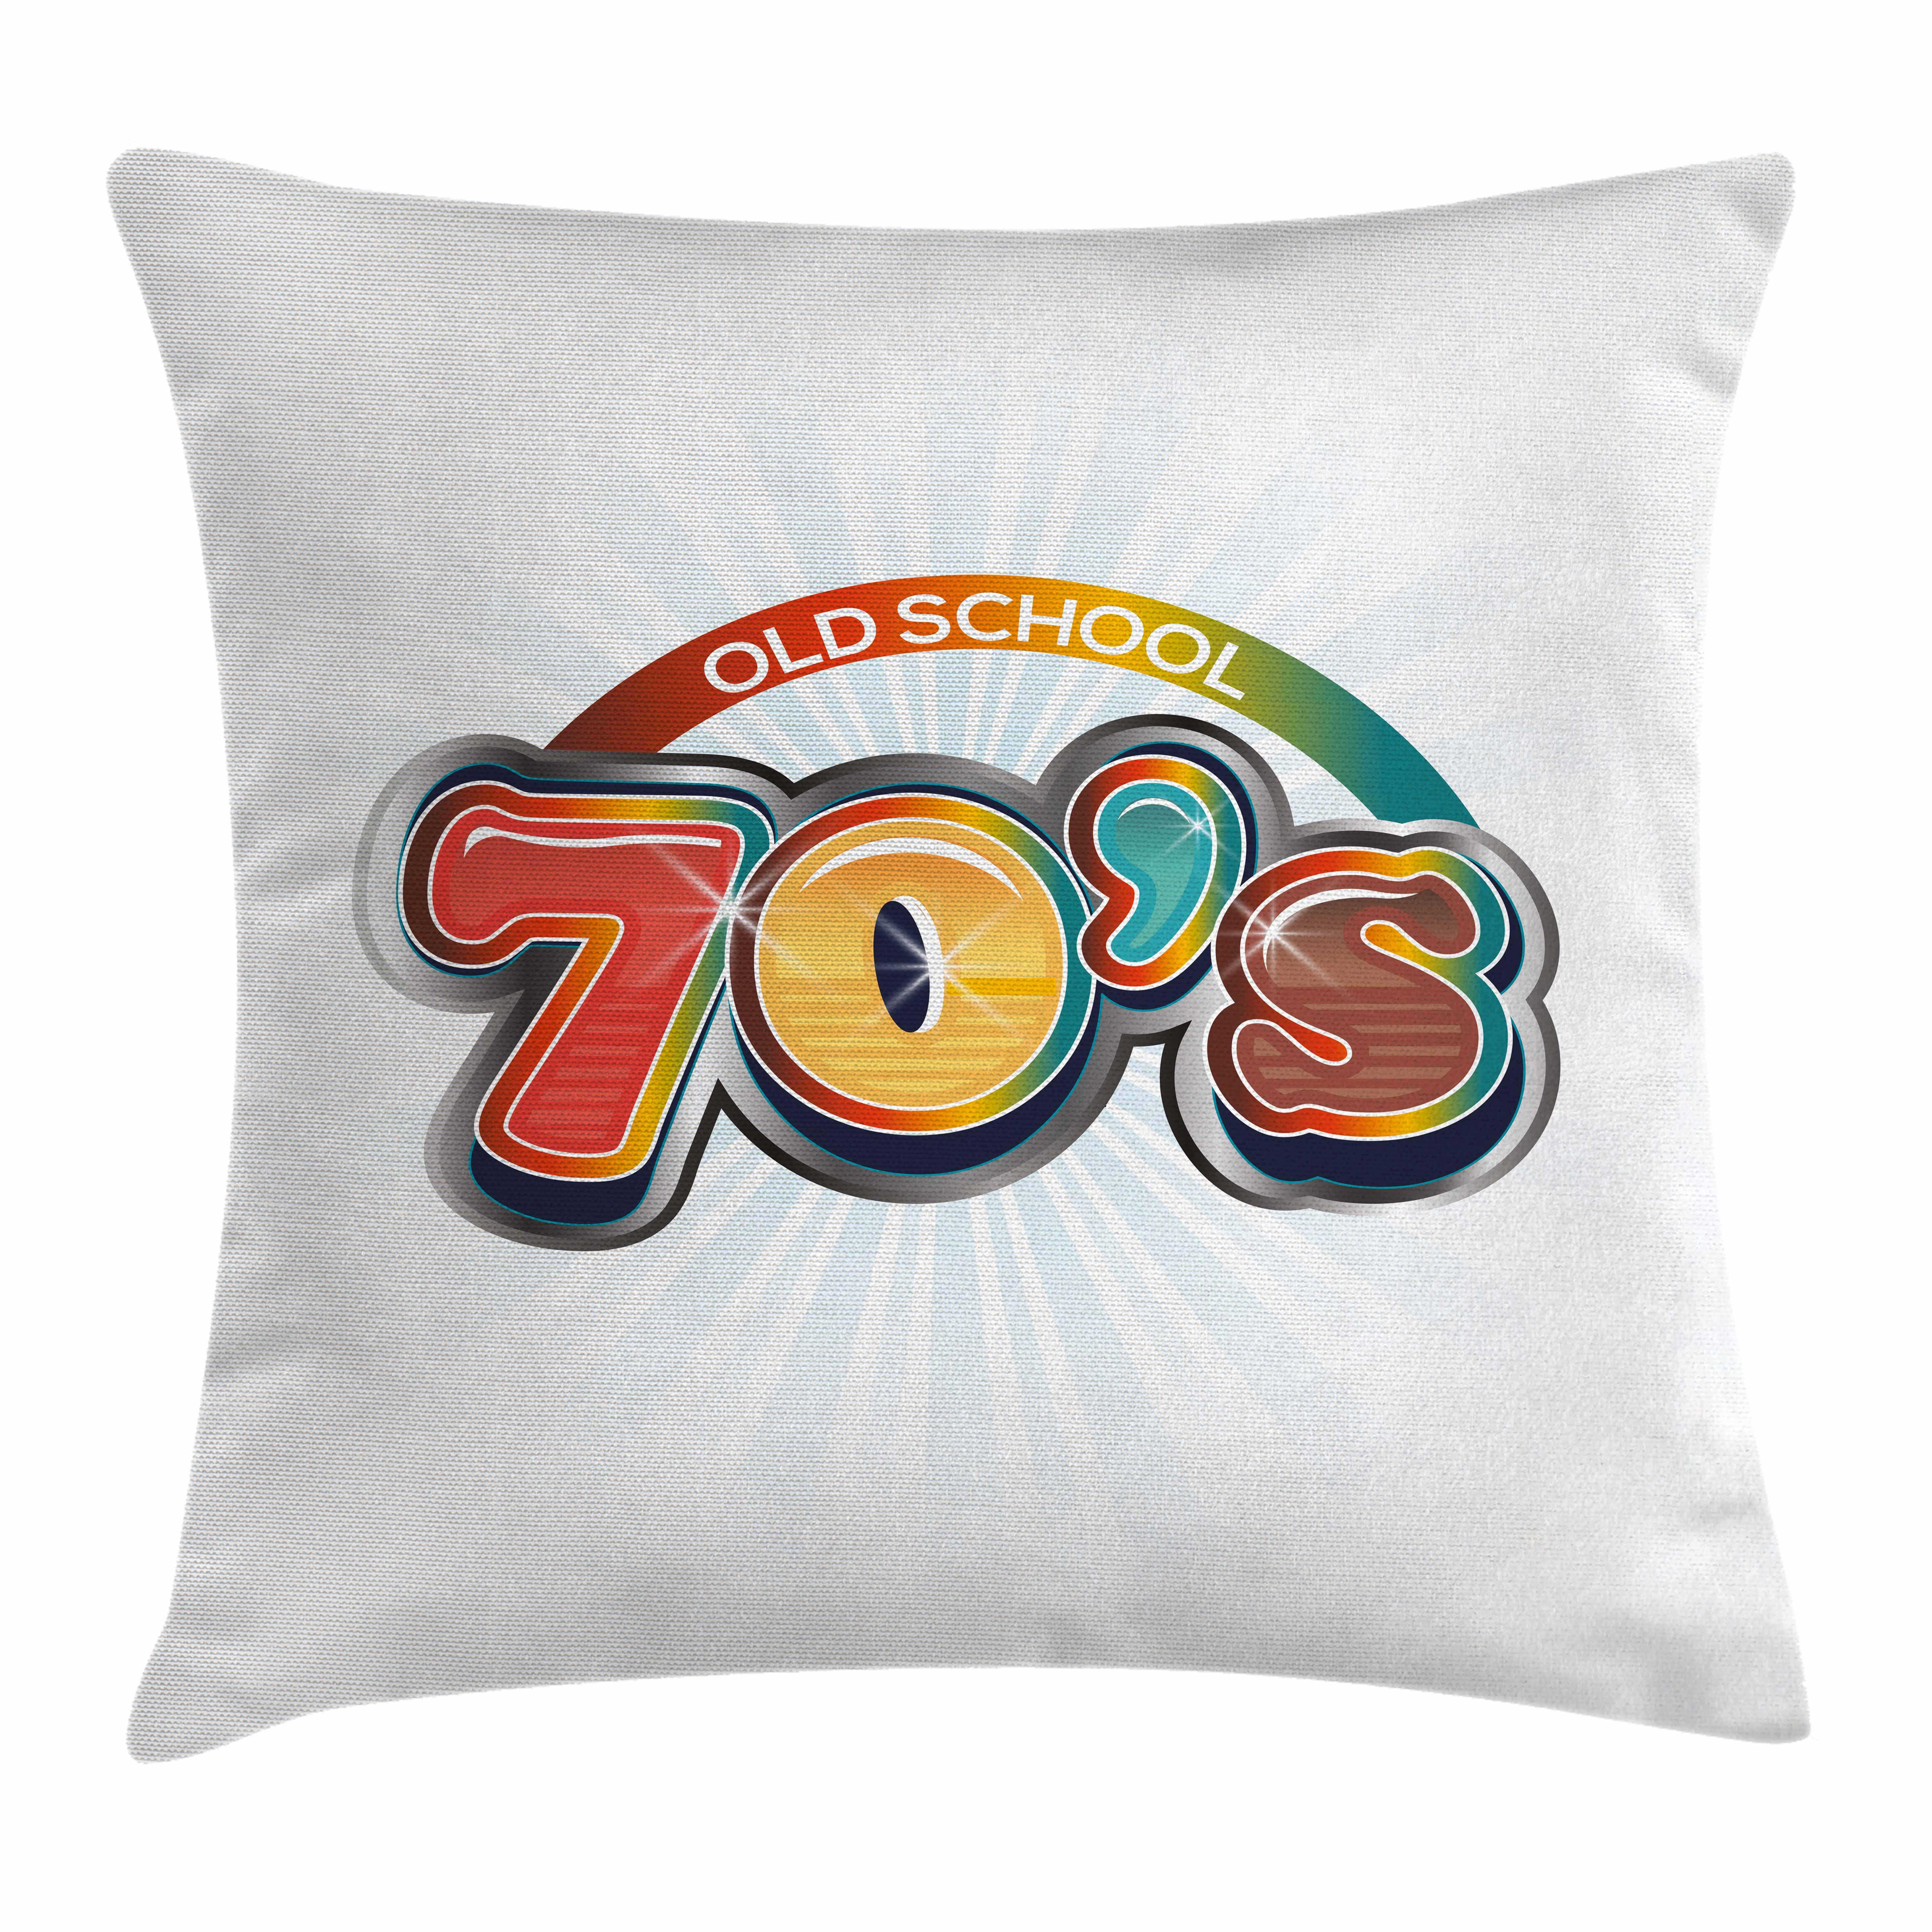 70s Party Decorations Throw Pillow Cushion Cover, Vintage Old School Icon Radial Design Classical Vivid Colored, Decorative Square Accent Pillow Case, 18 X 18 Inches, Red Marigold Aqua, by Ambesonne